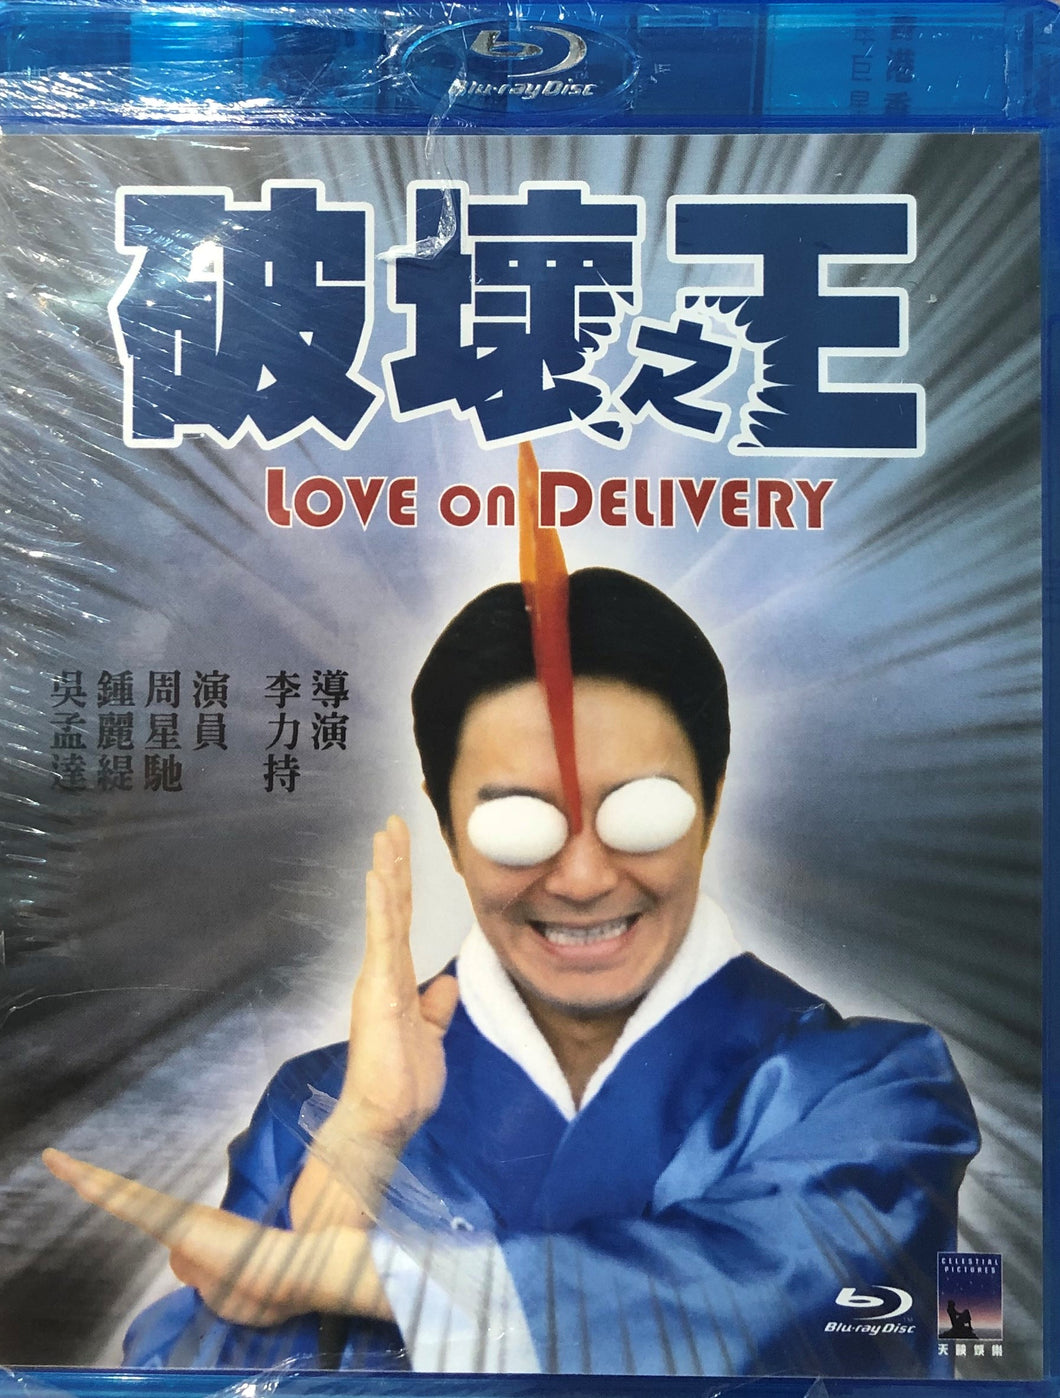 Love On Delivery 破壞之王 1994 (Hong Kong Movie) BLU-RAY with English Sub (Region Free)